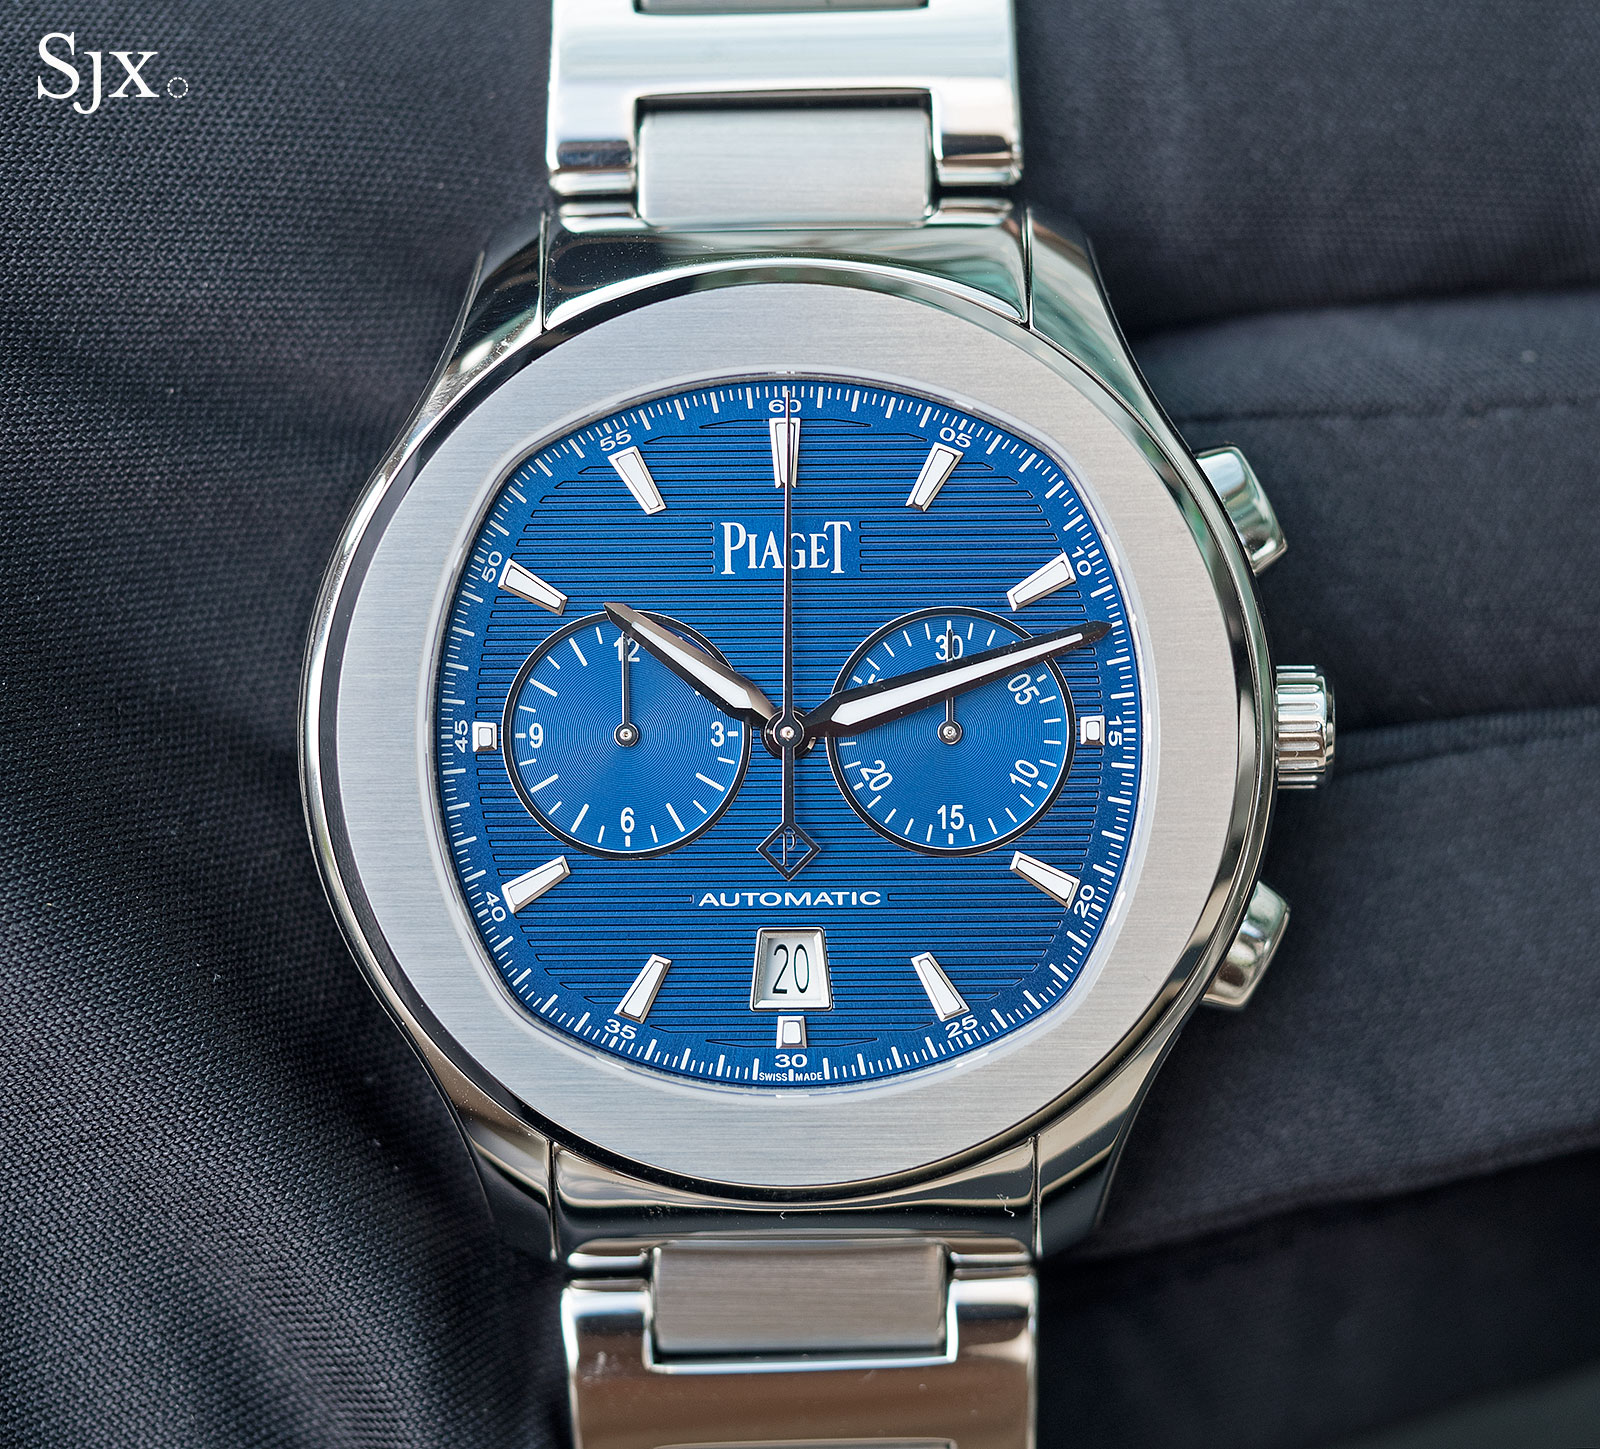 images luxury to click swiss piaget here singapore watches view larger in